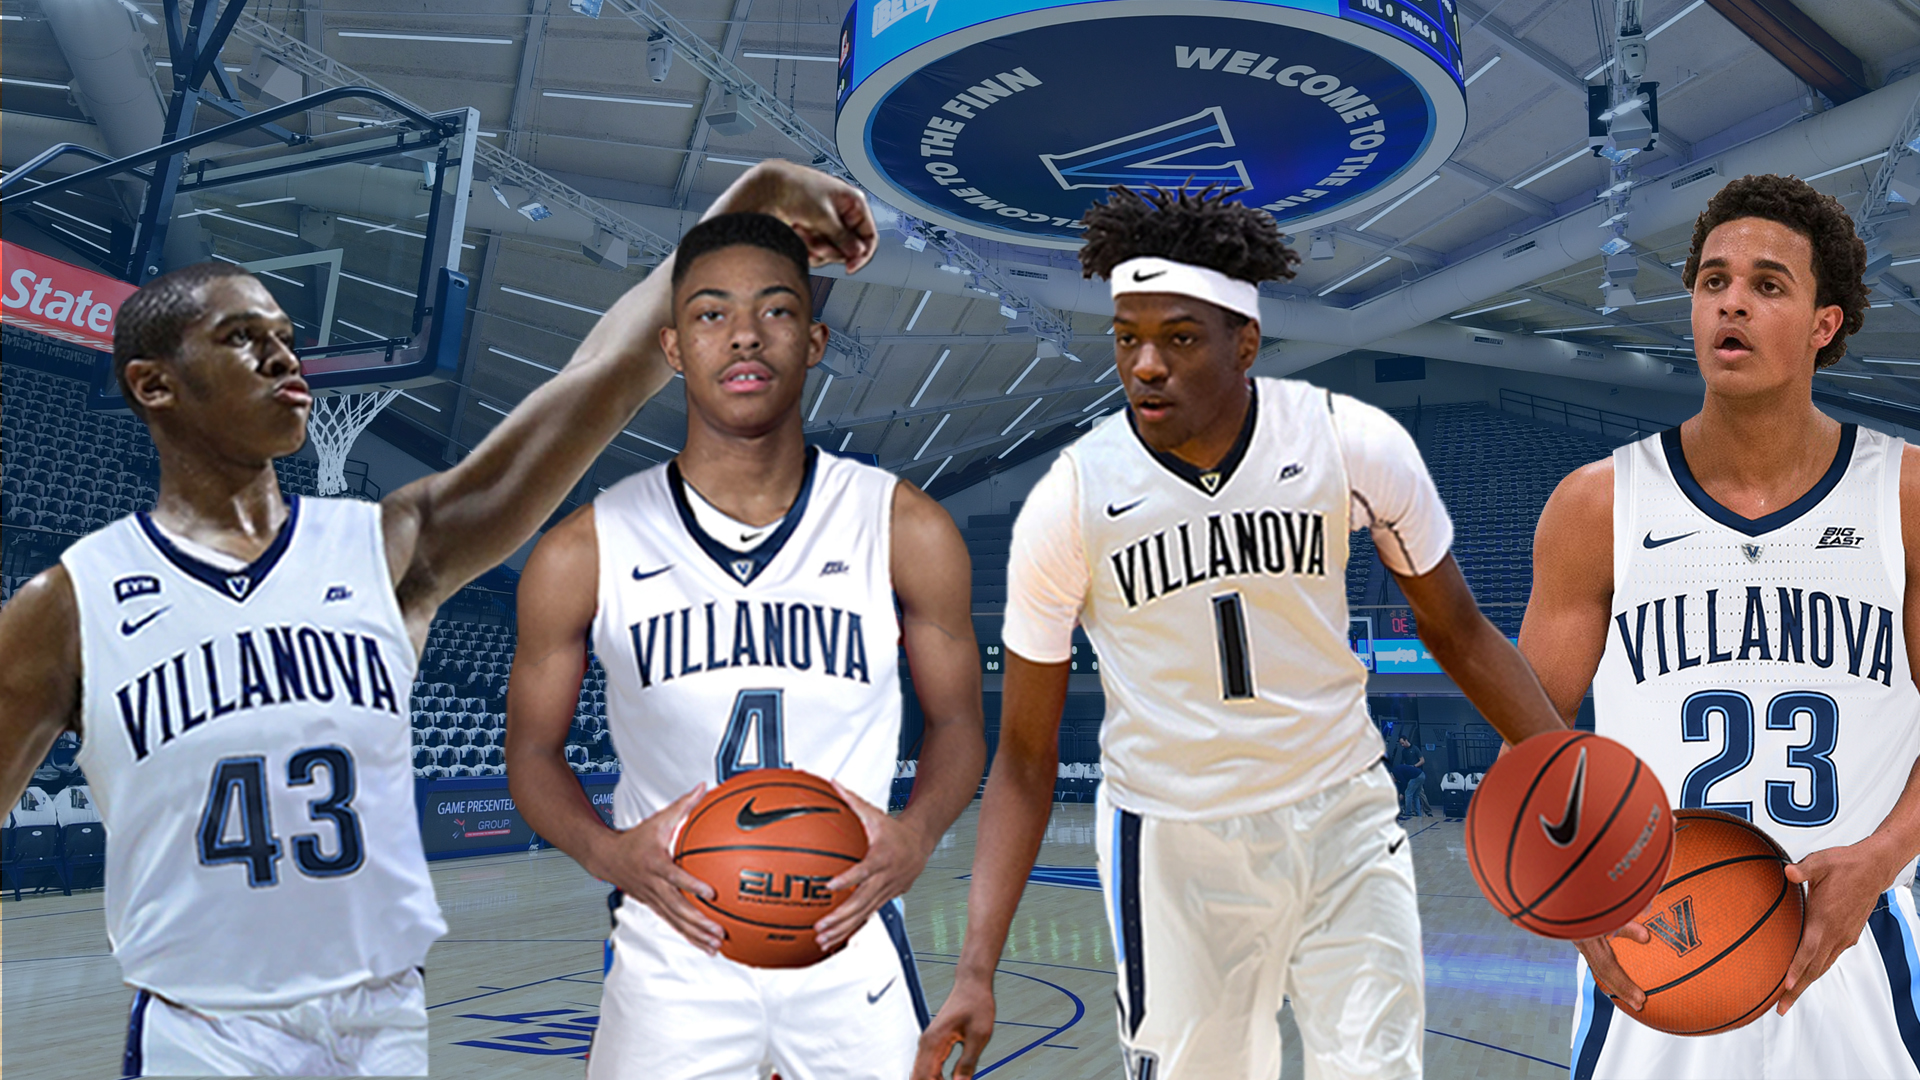 Wildcats Ink Four Standouts to Letters of Intent - Villanova University Athletics